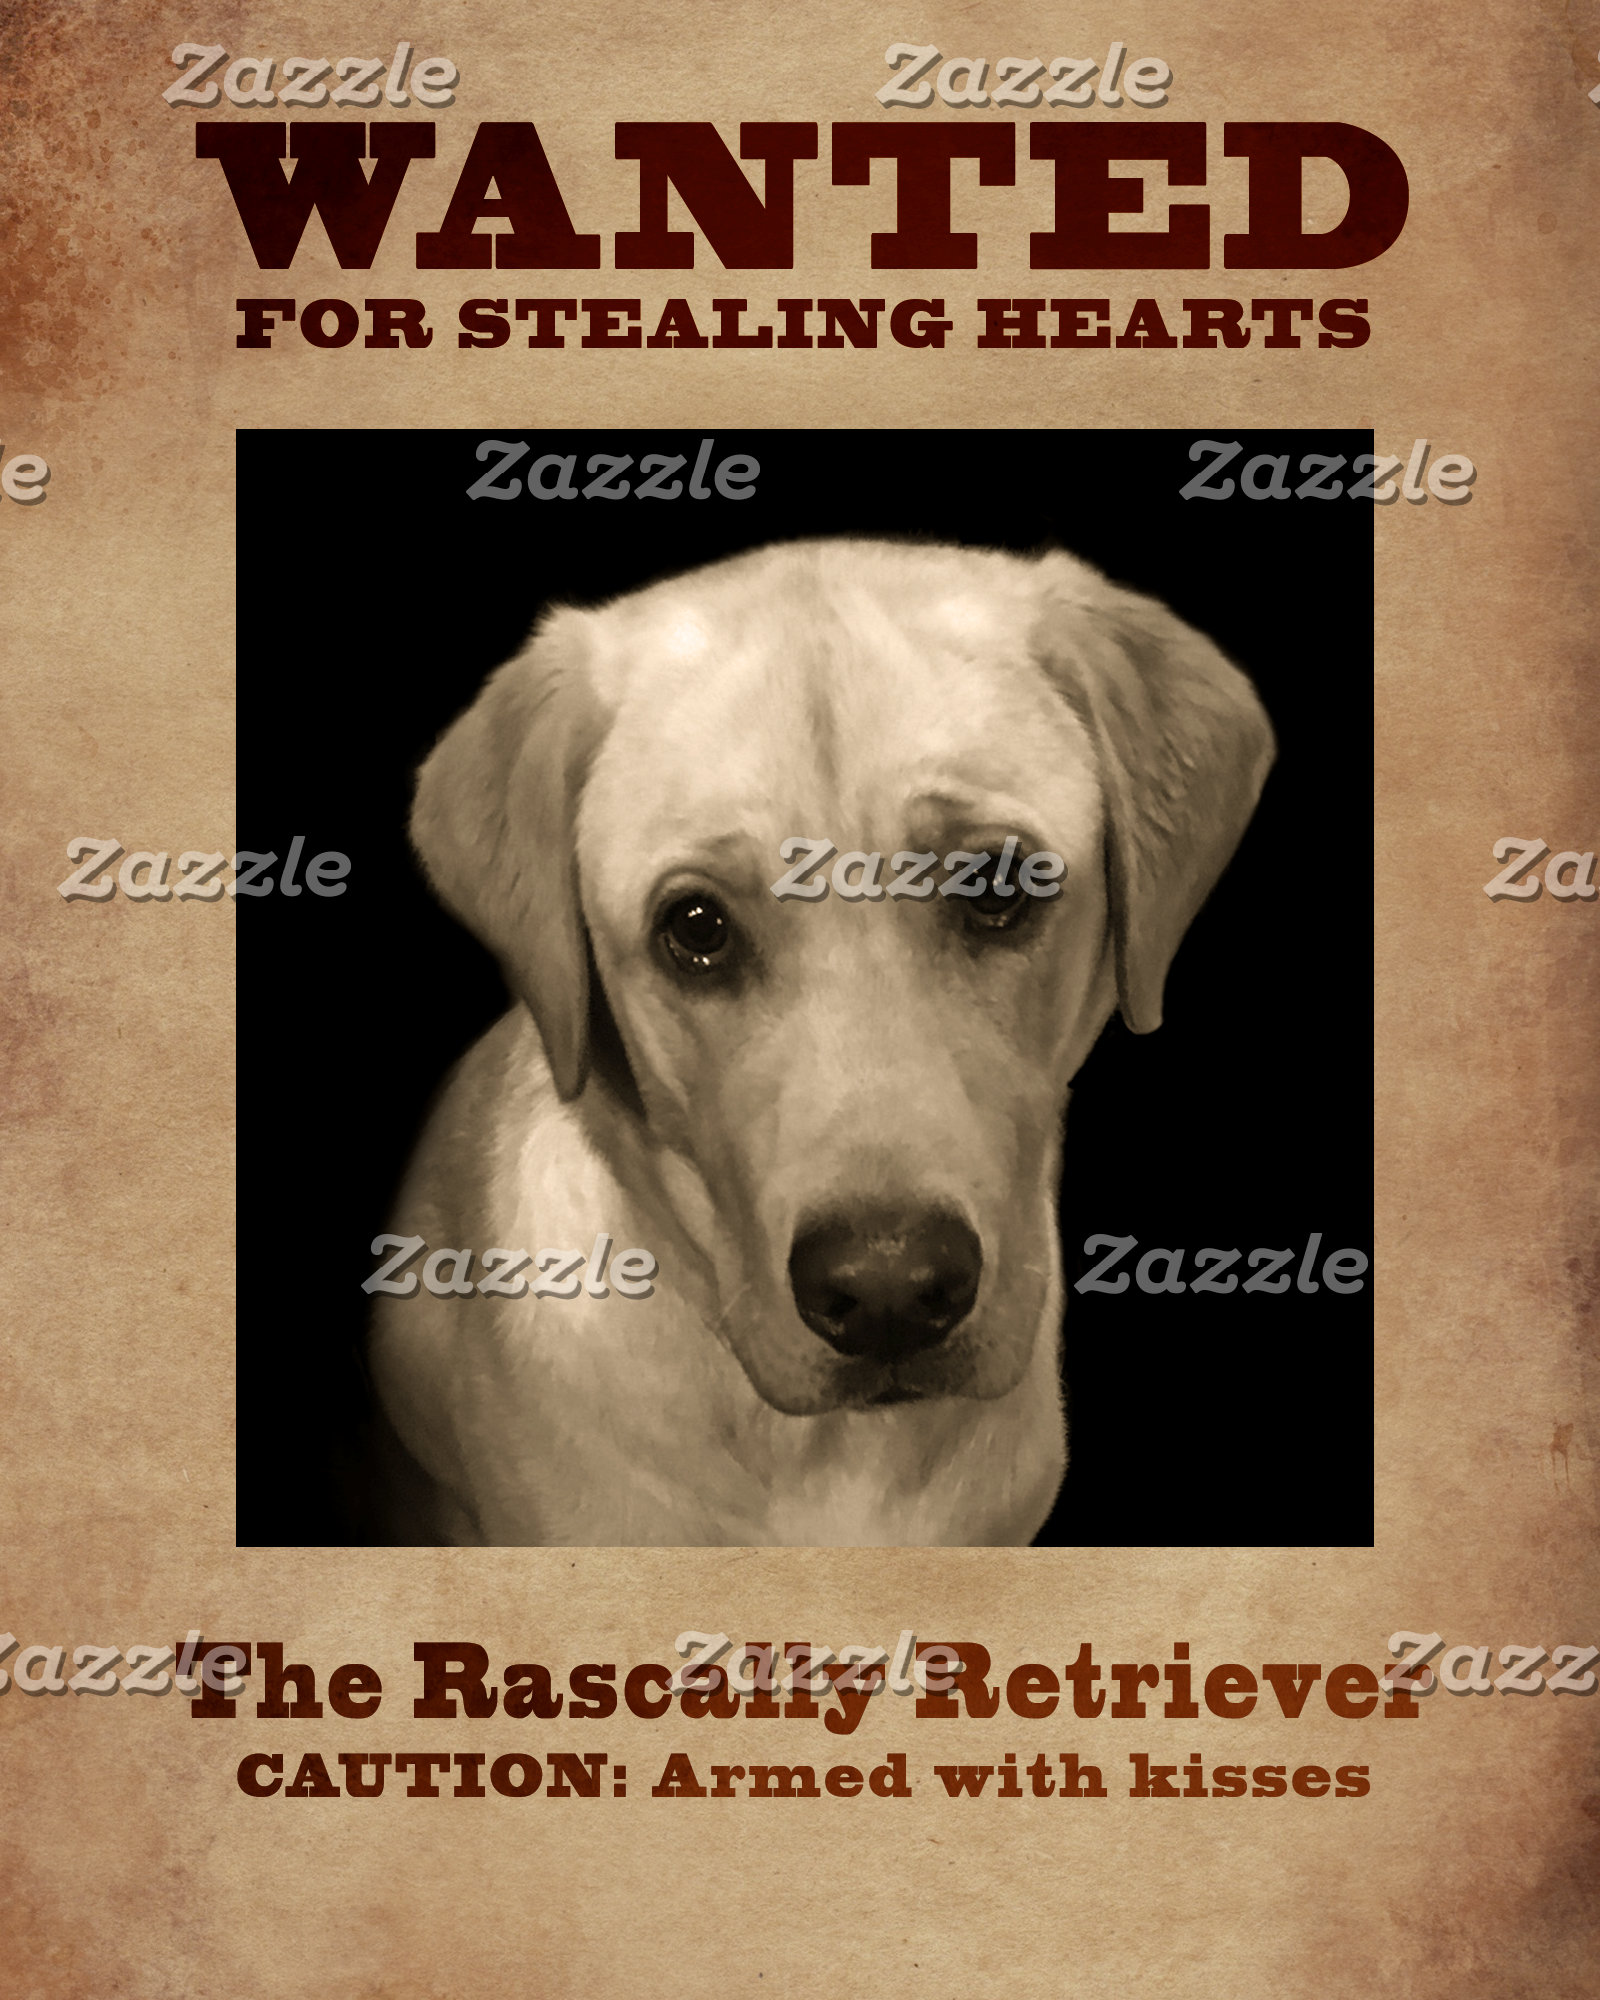 The Rascally Retriever